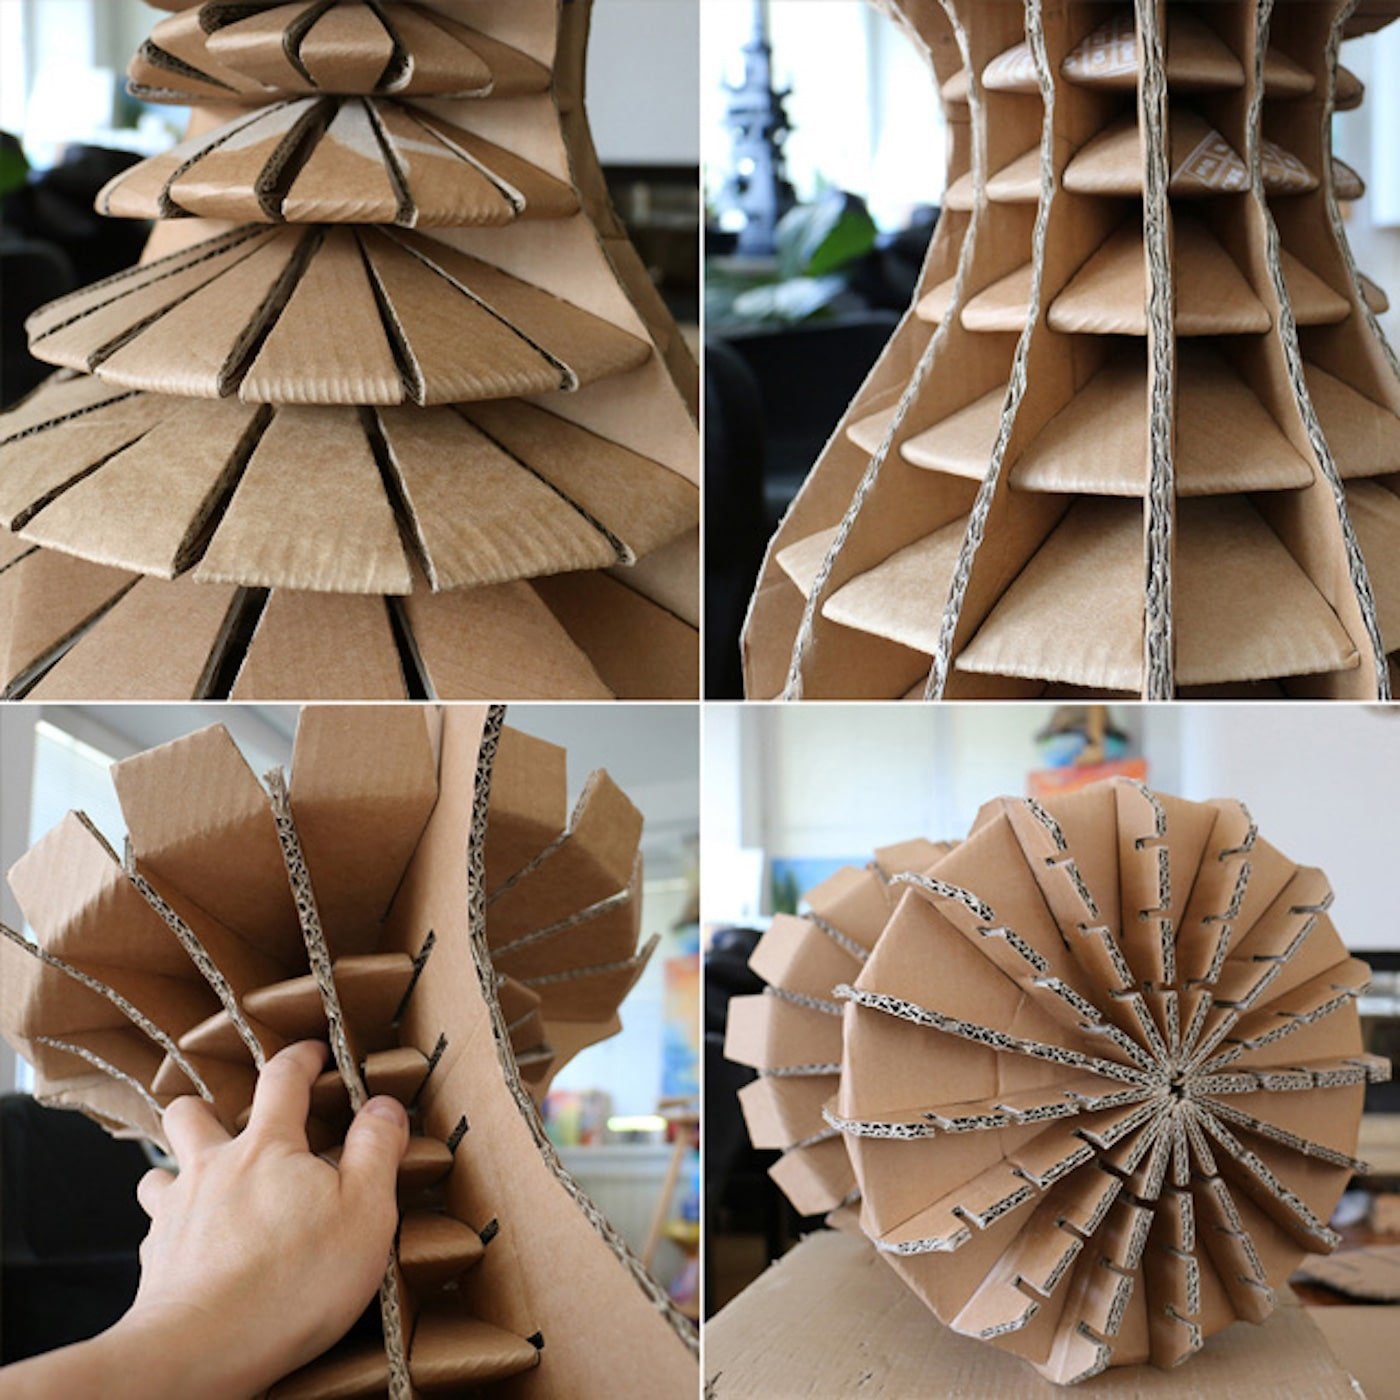 Round stool being handmade from recycled cardboard